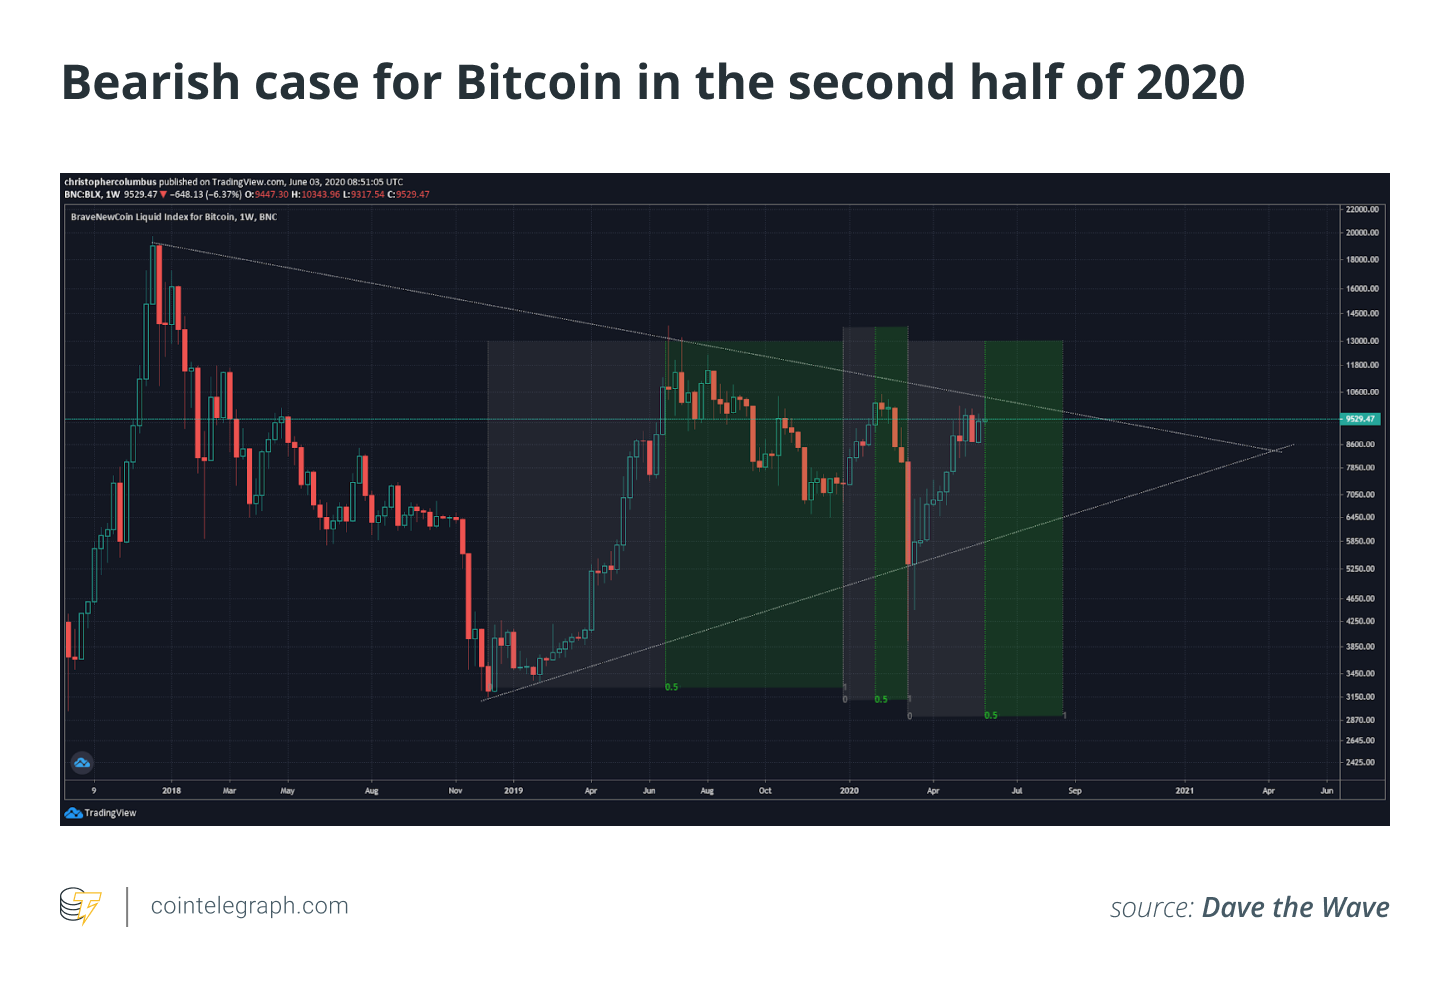 Bearish case for Bitcoin in the second half of 2020